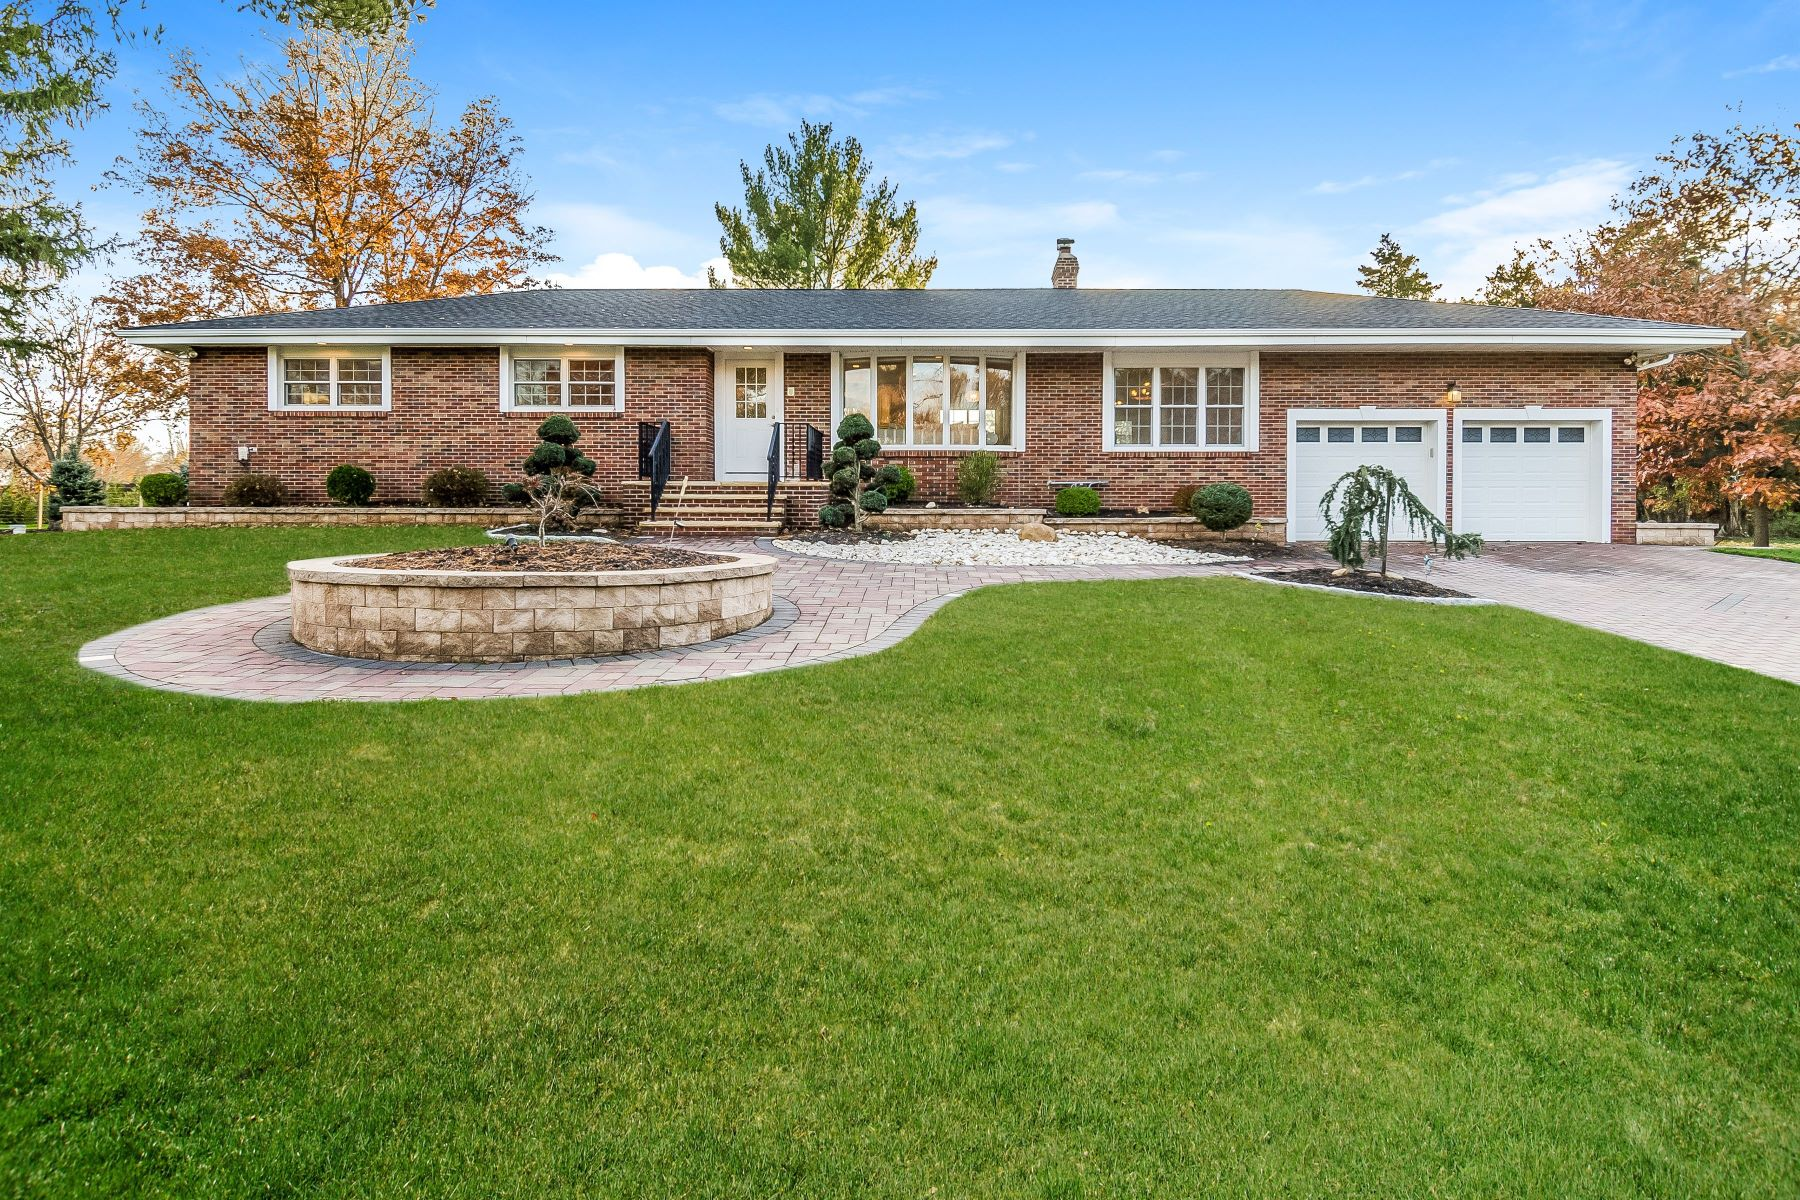 Single Family Homes for Sale at Multi-Generational Living At Its Best 427 Belle Mead Griggstown Road, Belle Mead, New Jersey 08502 United States